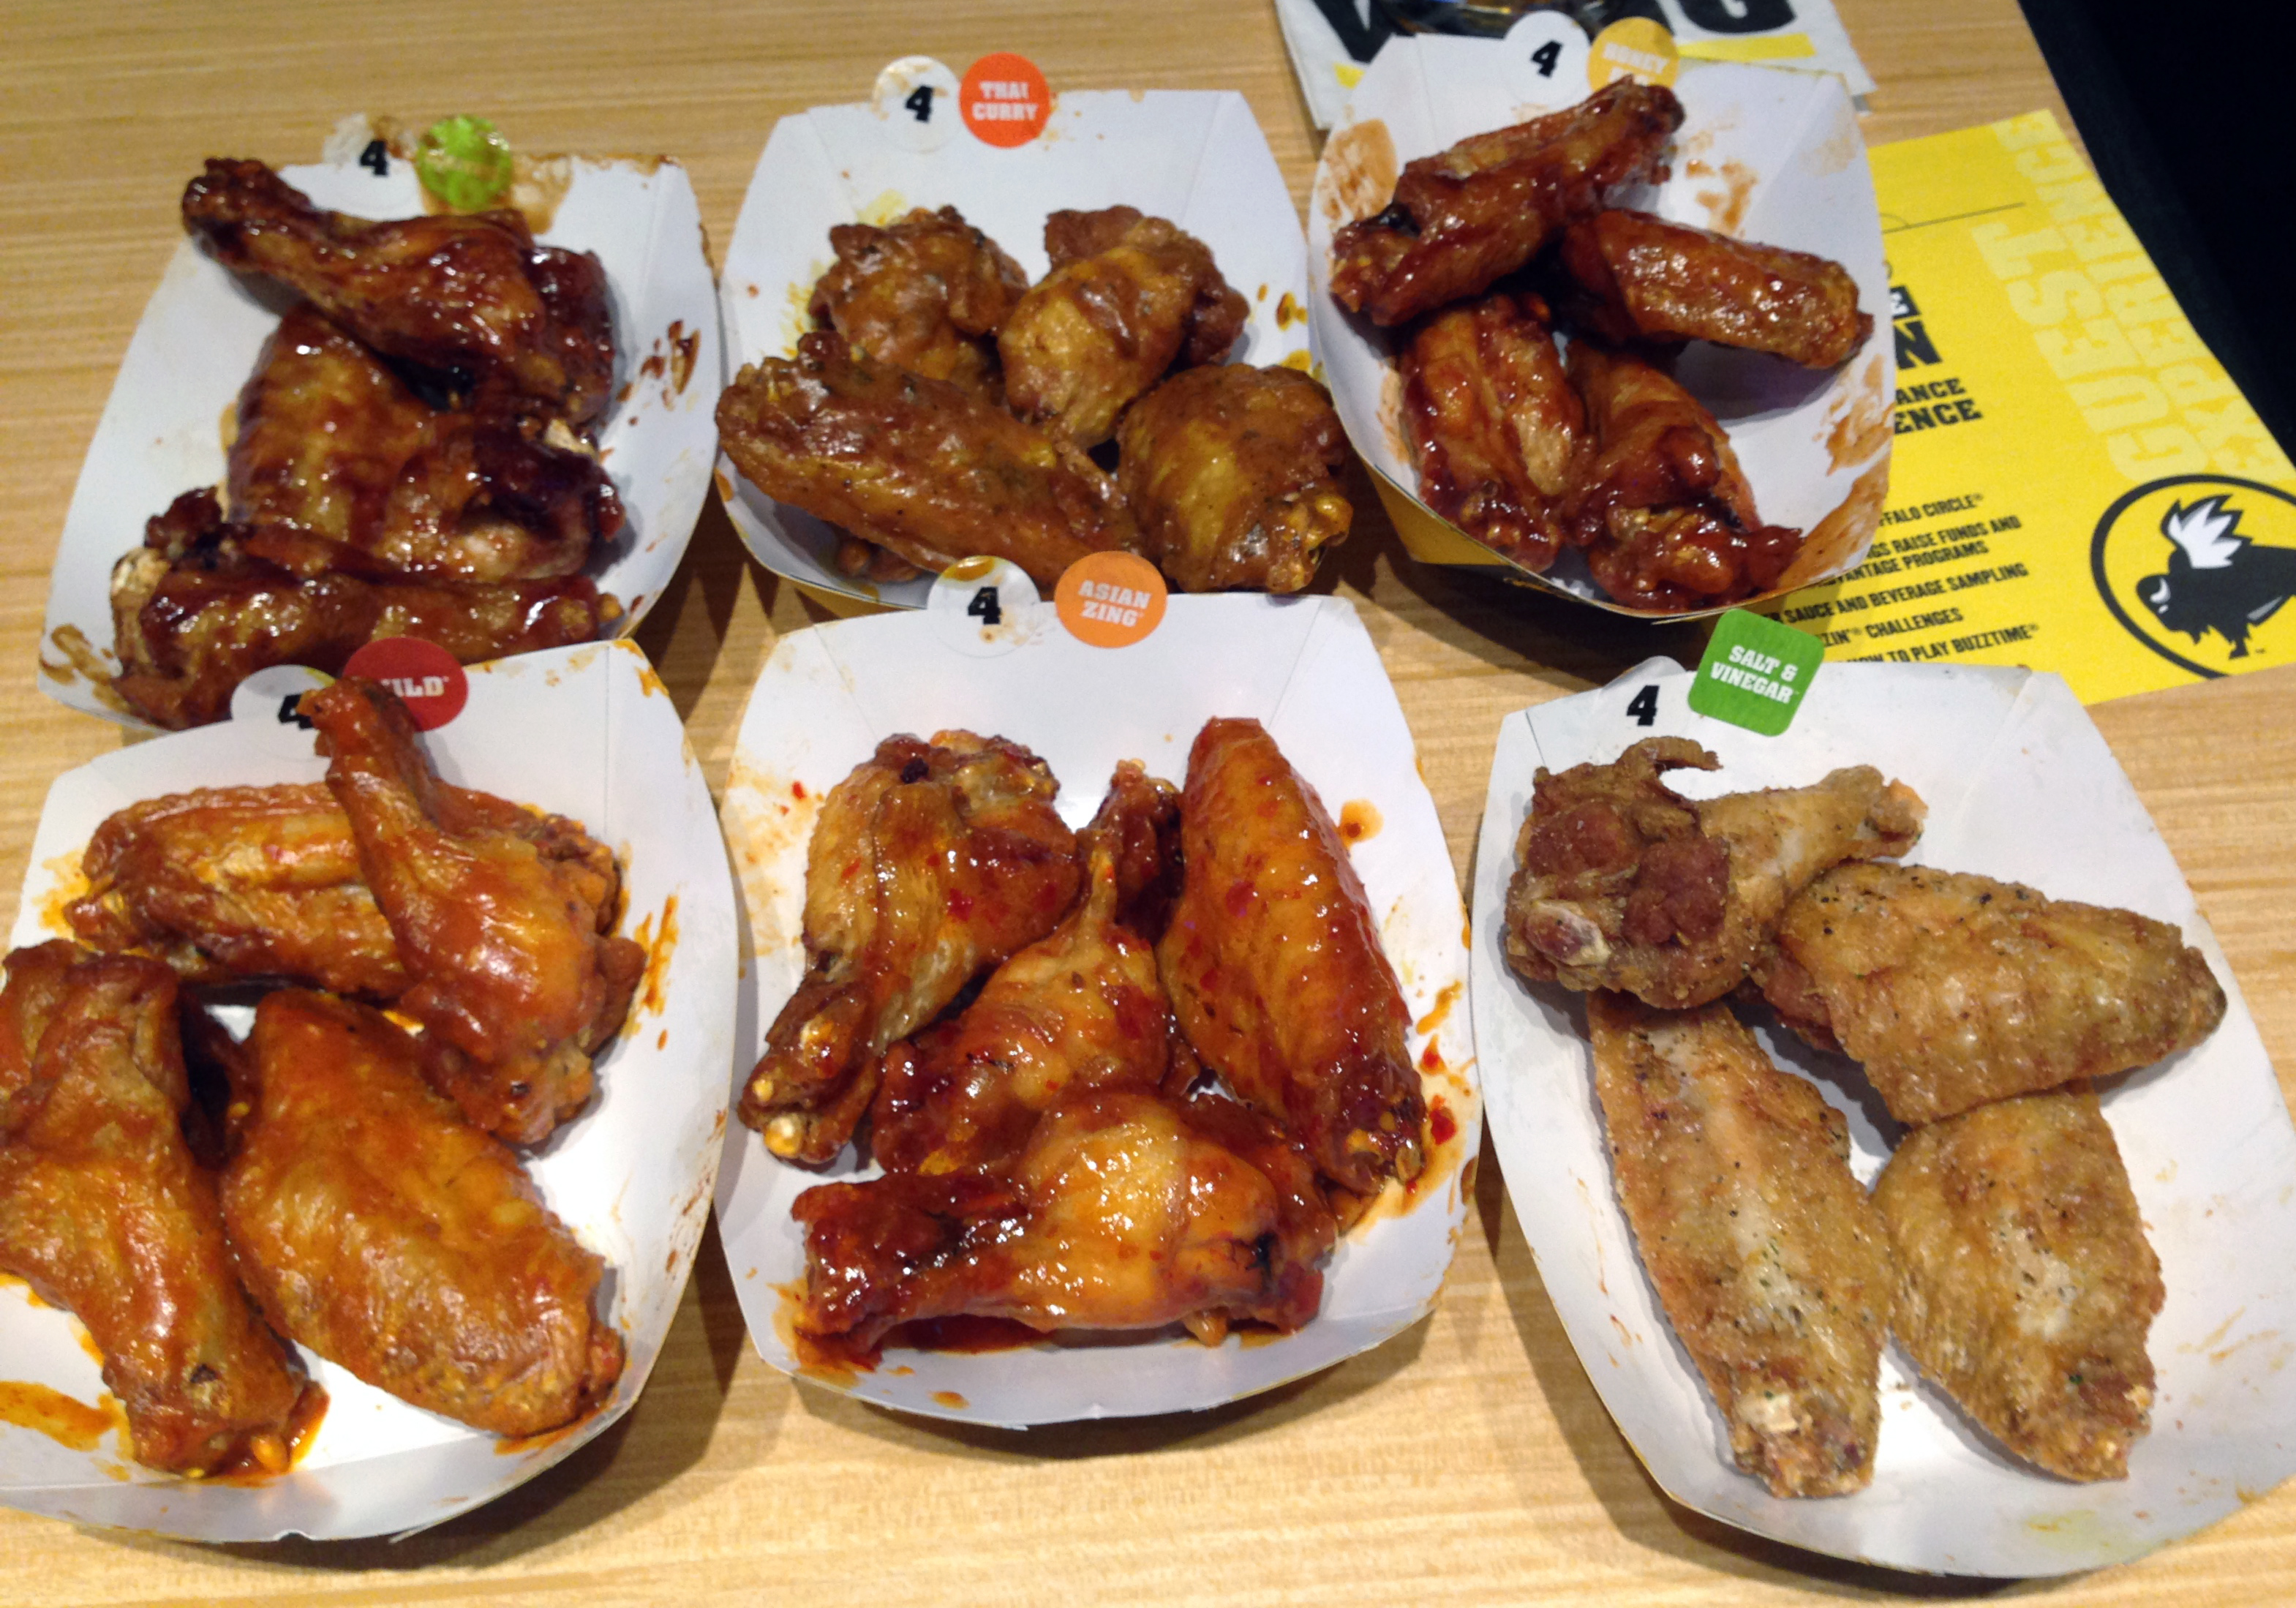 Nov 28,  · Wings. Beer. And Arby's. Fast-food chain Arby's Restaurant Group said Tuesday it reached a deal to acquire Buffalo Wild Wings, which promotes the slogan